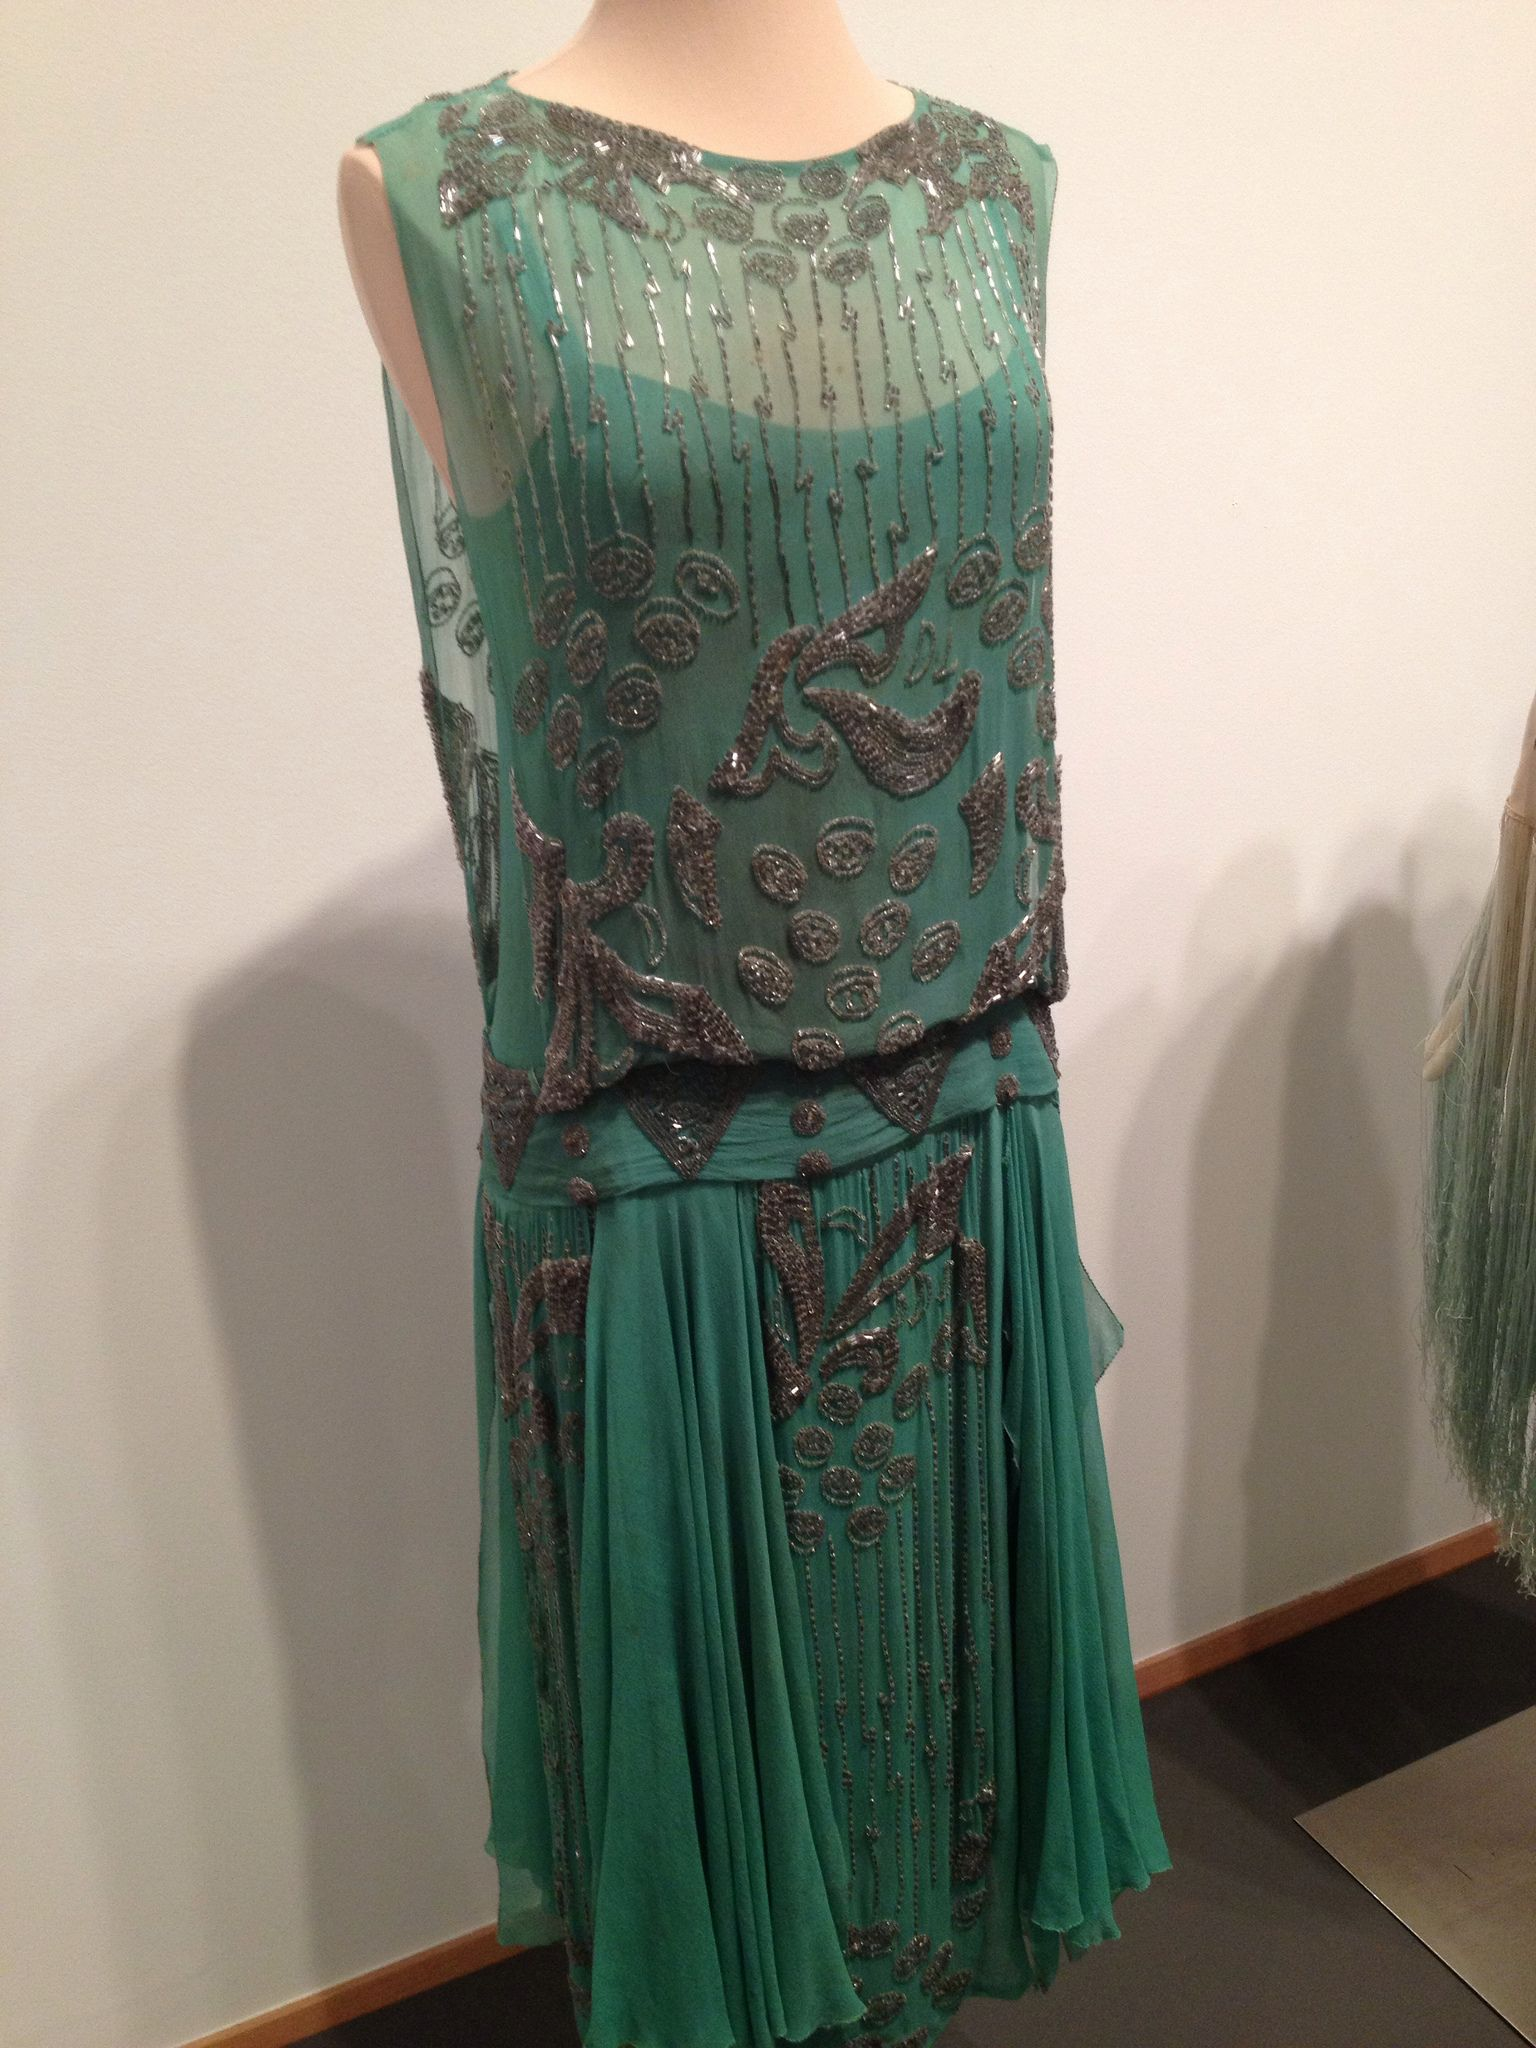 1920s evening dress from local museum exhibit. Tutankamon's tomb had only recently been discovered so clothes reflected the interest in Nile greens and often with Egyptian motifs. More